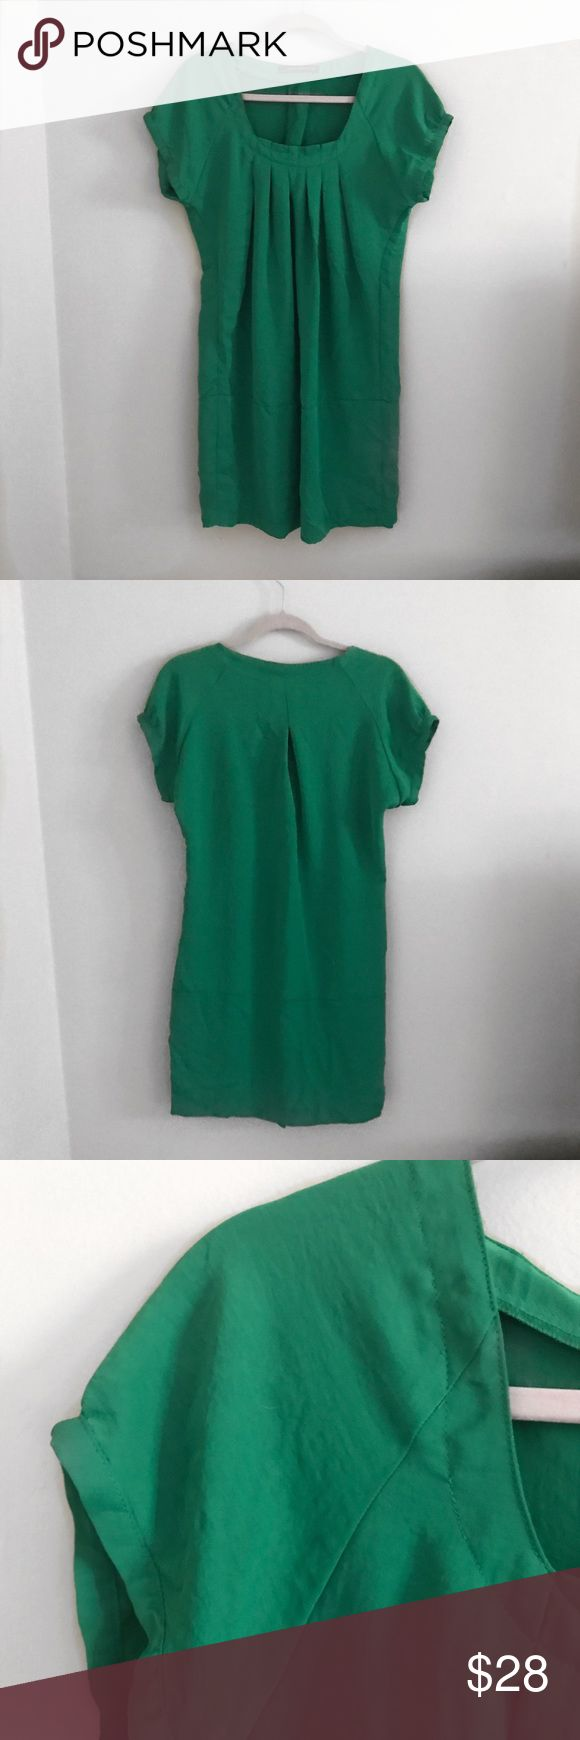 Zara Kelly Green Dress Zara Kelly Green Dress. Size medium. In gently worn condition. Perfect for the holiday parties! Zara Dresses Mini